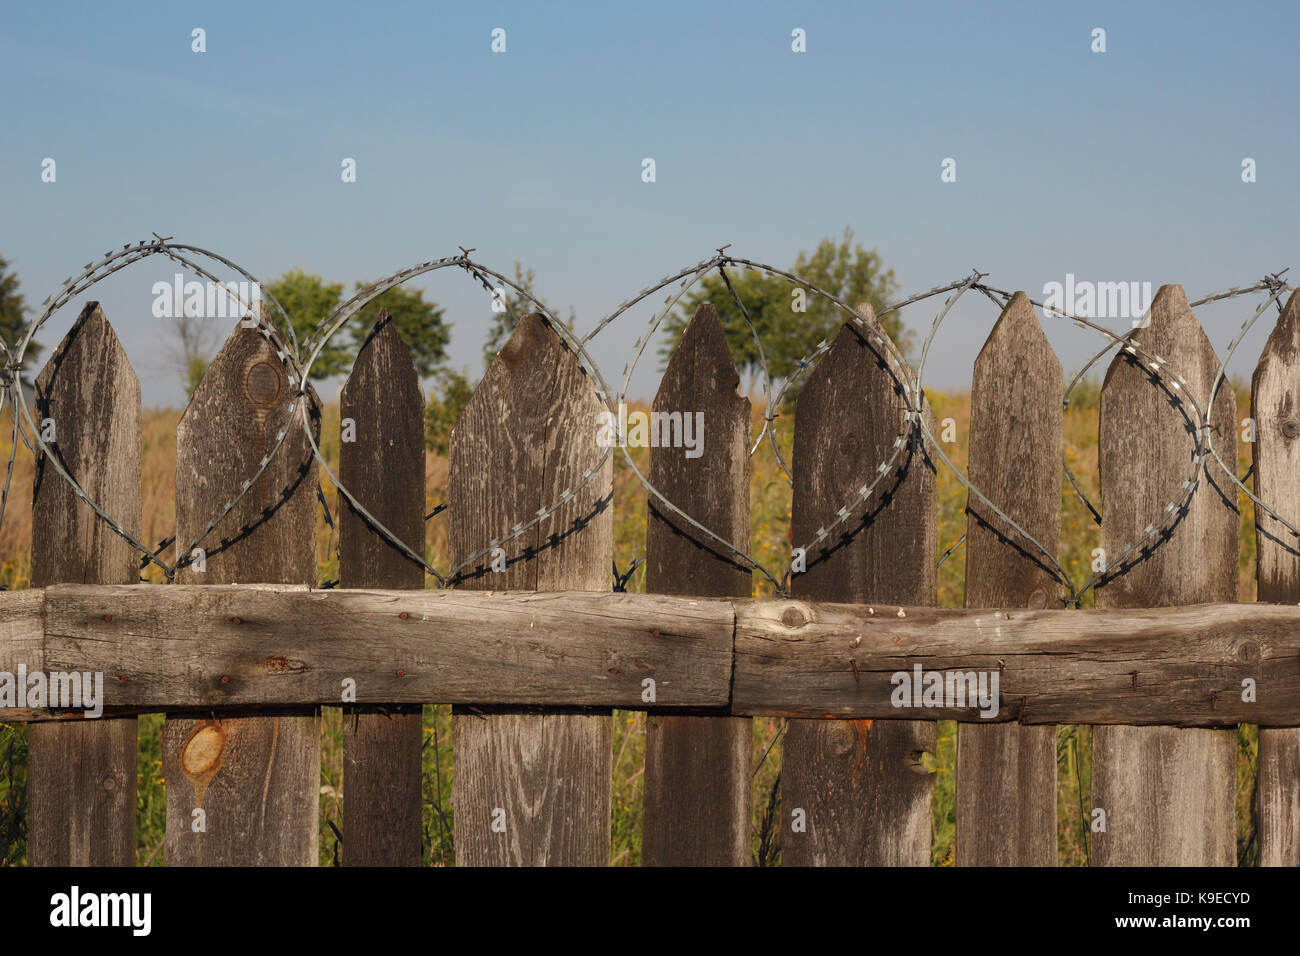 Old wooden fence with barbed wire photo - Stock Image